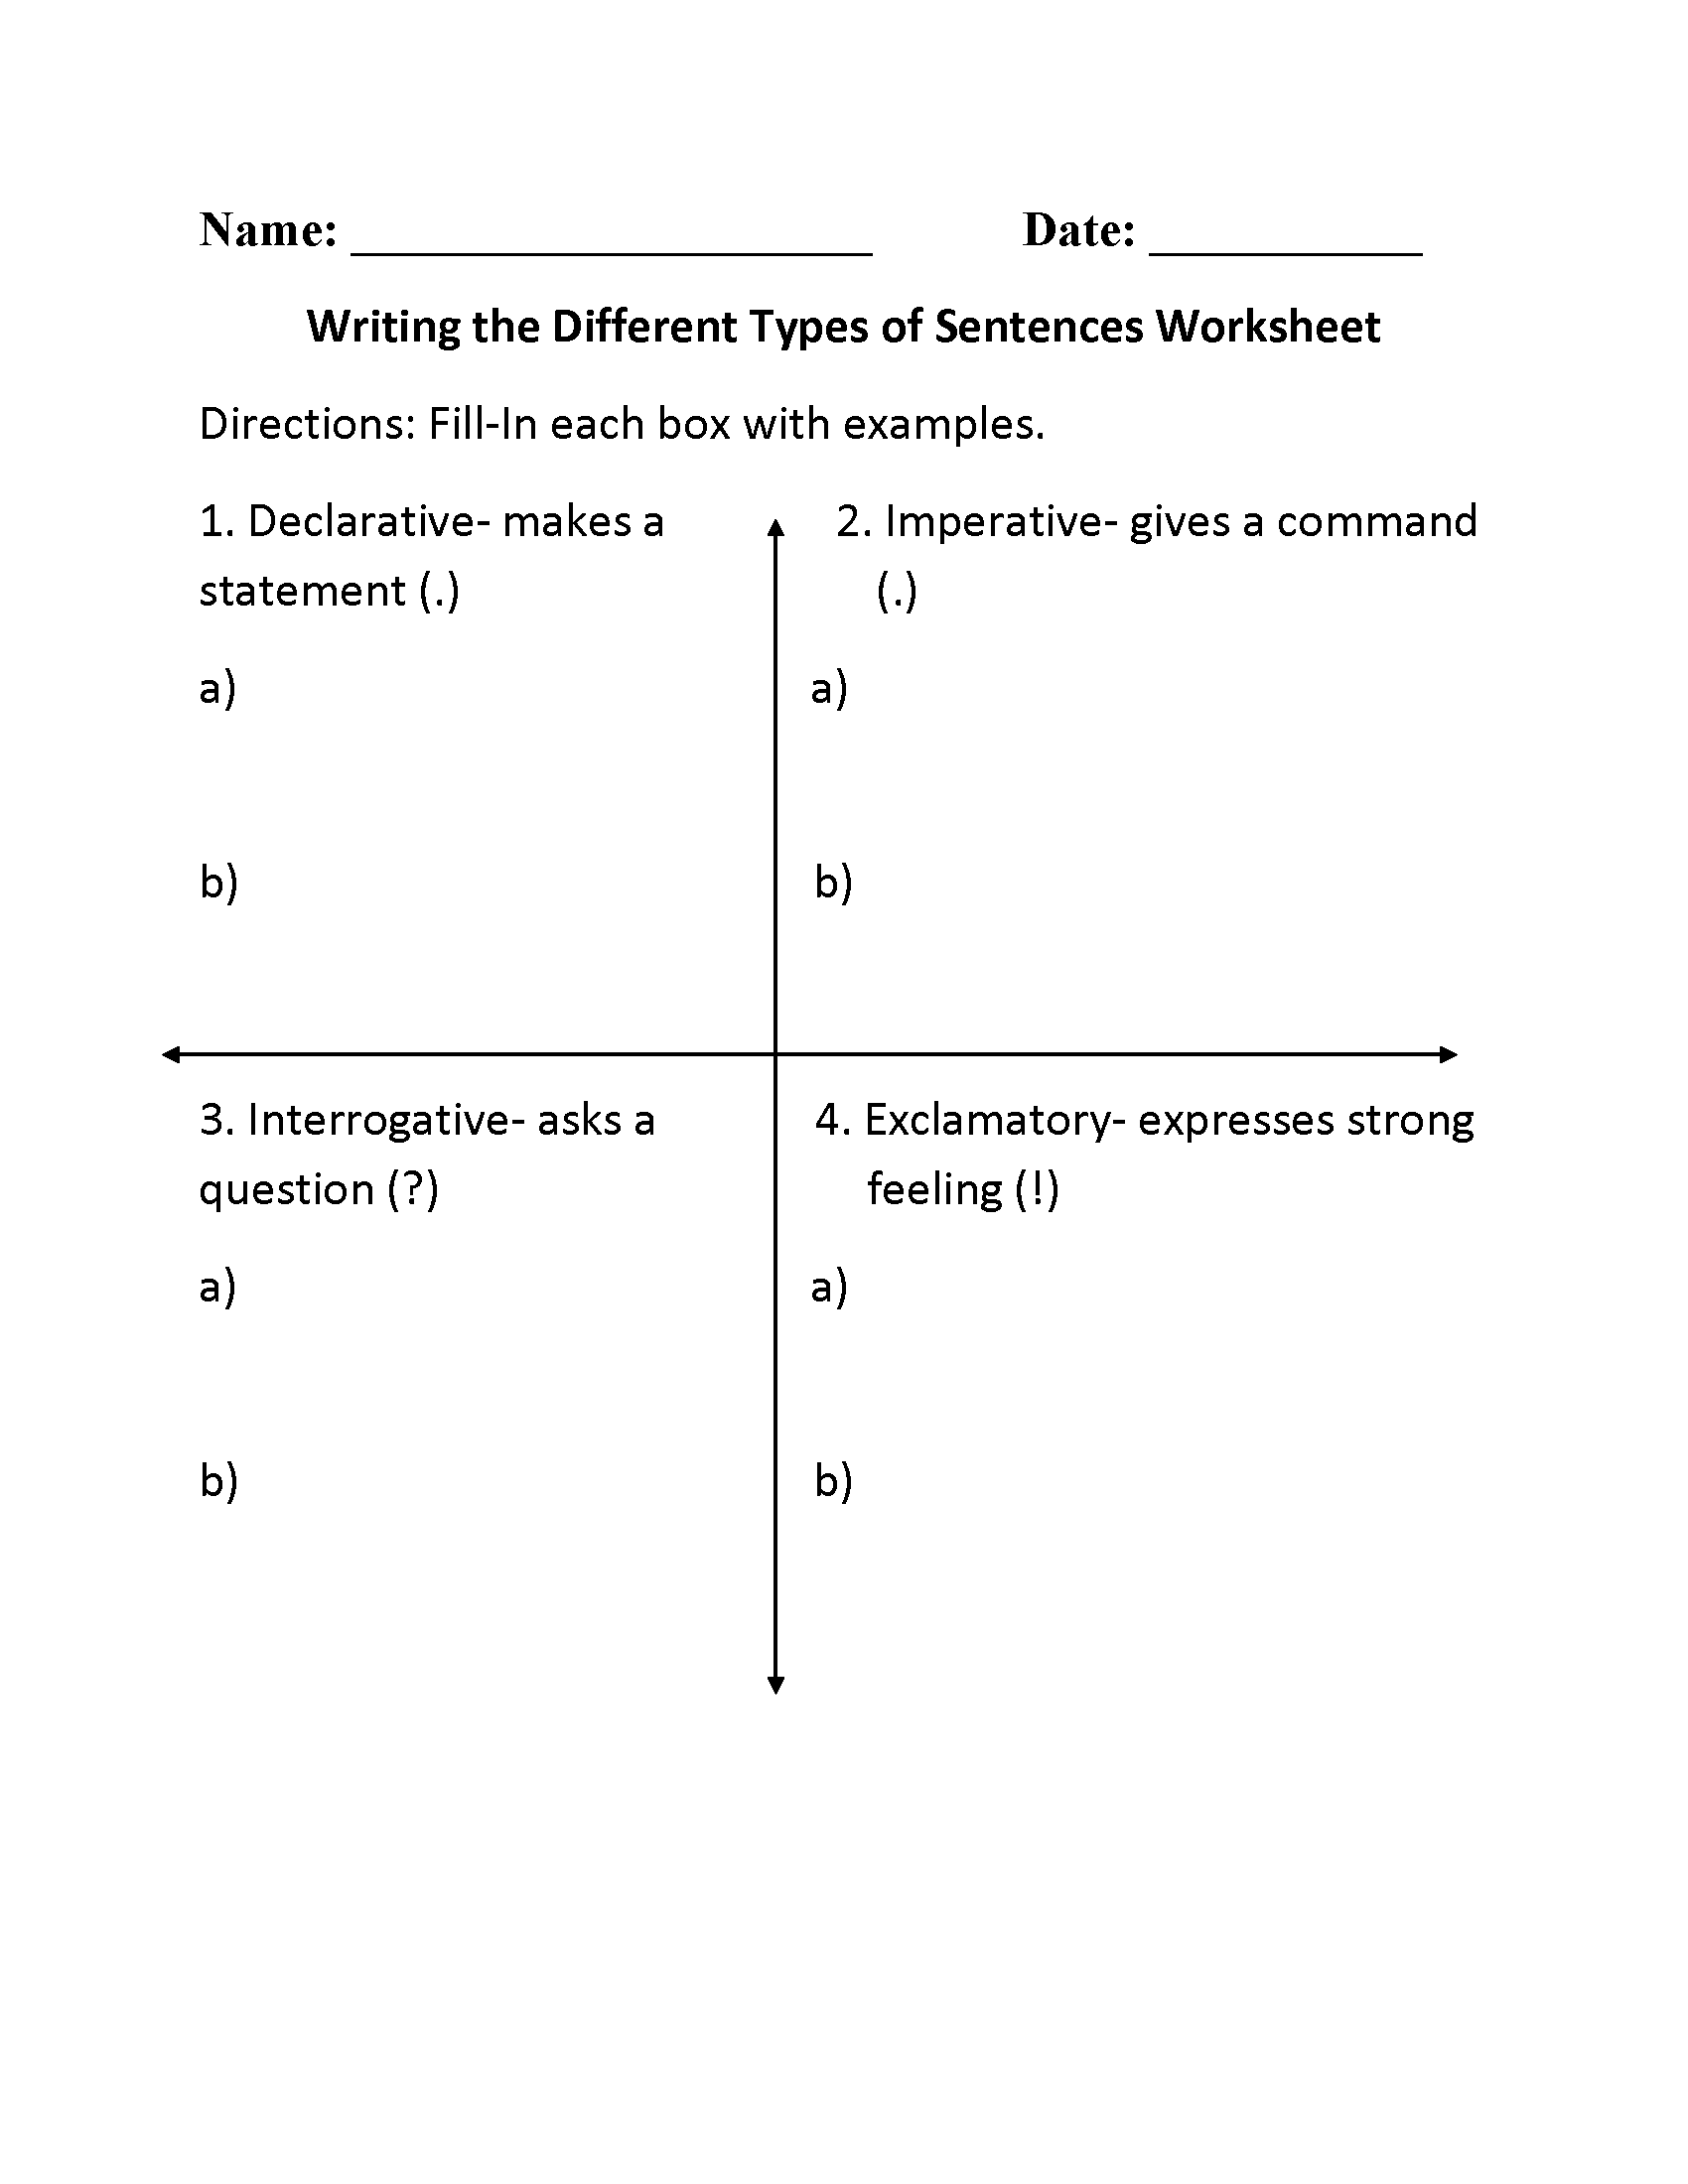 Worksheets Four Types Of Sentences Worksheet writing types of sentences worksheet 2nd grade ideas pinterest this is the worksheets section learning will help with there are four types